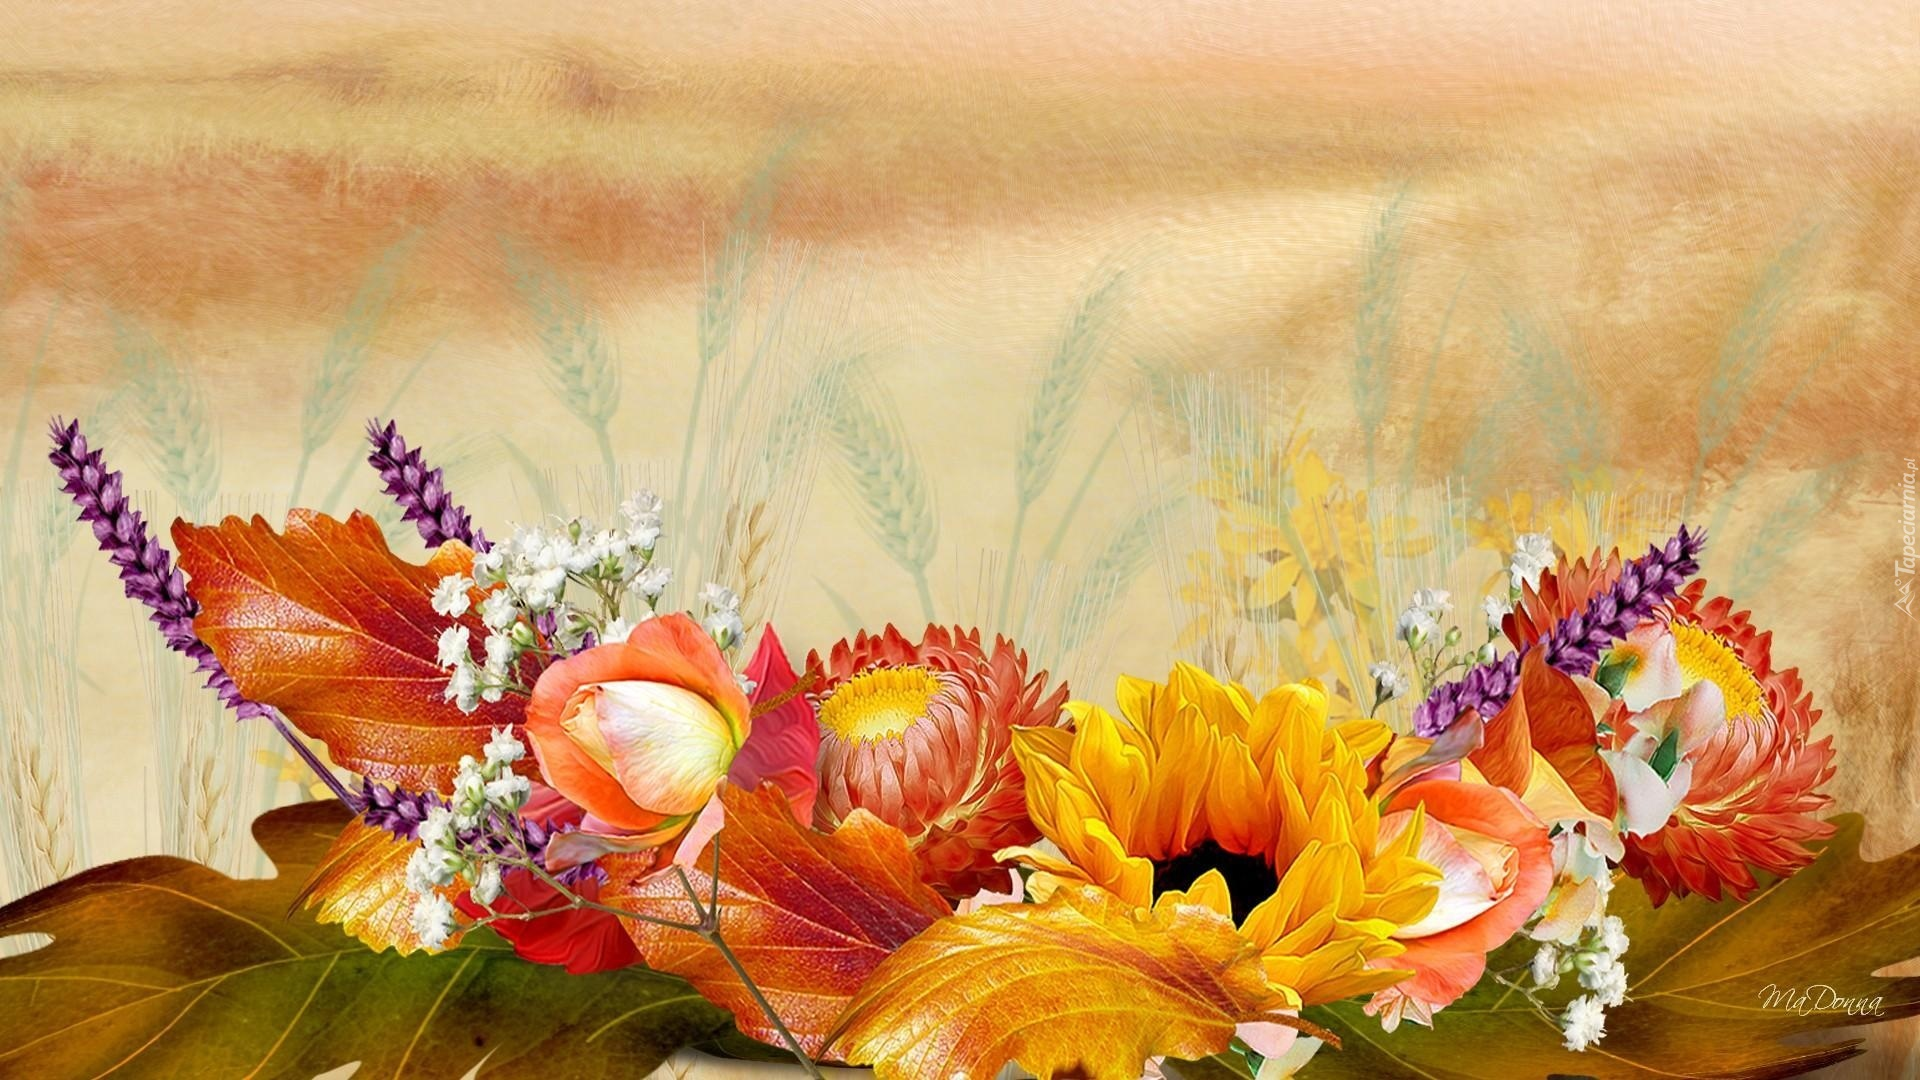 Fall Flowers Wallpaper Desktop Grafika Jesienne Kwiaty